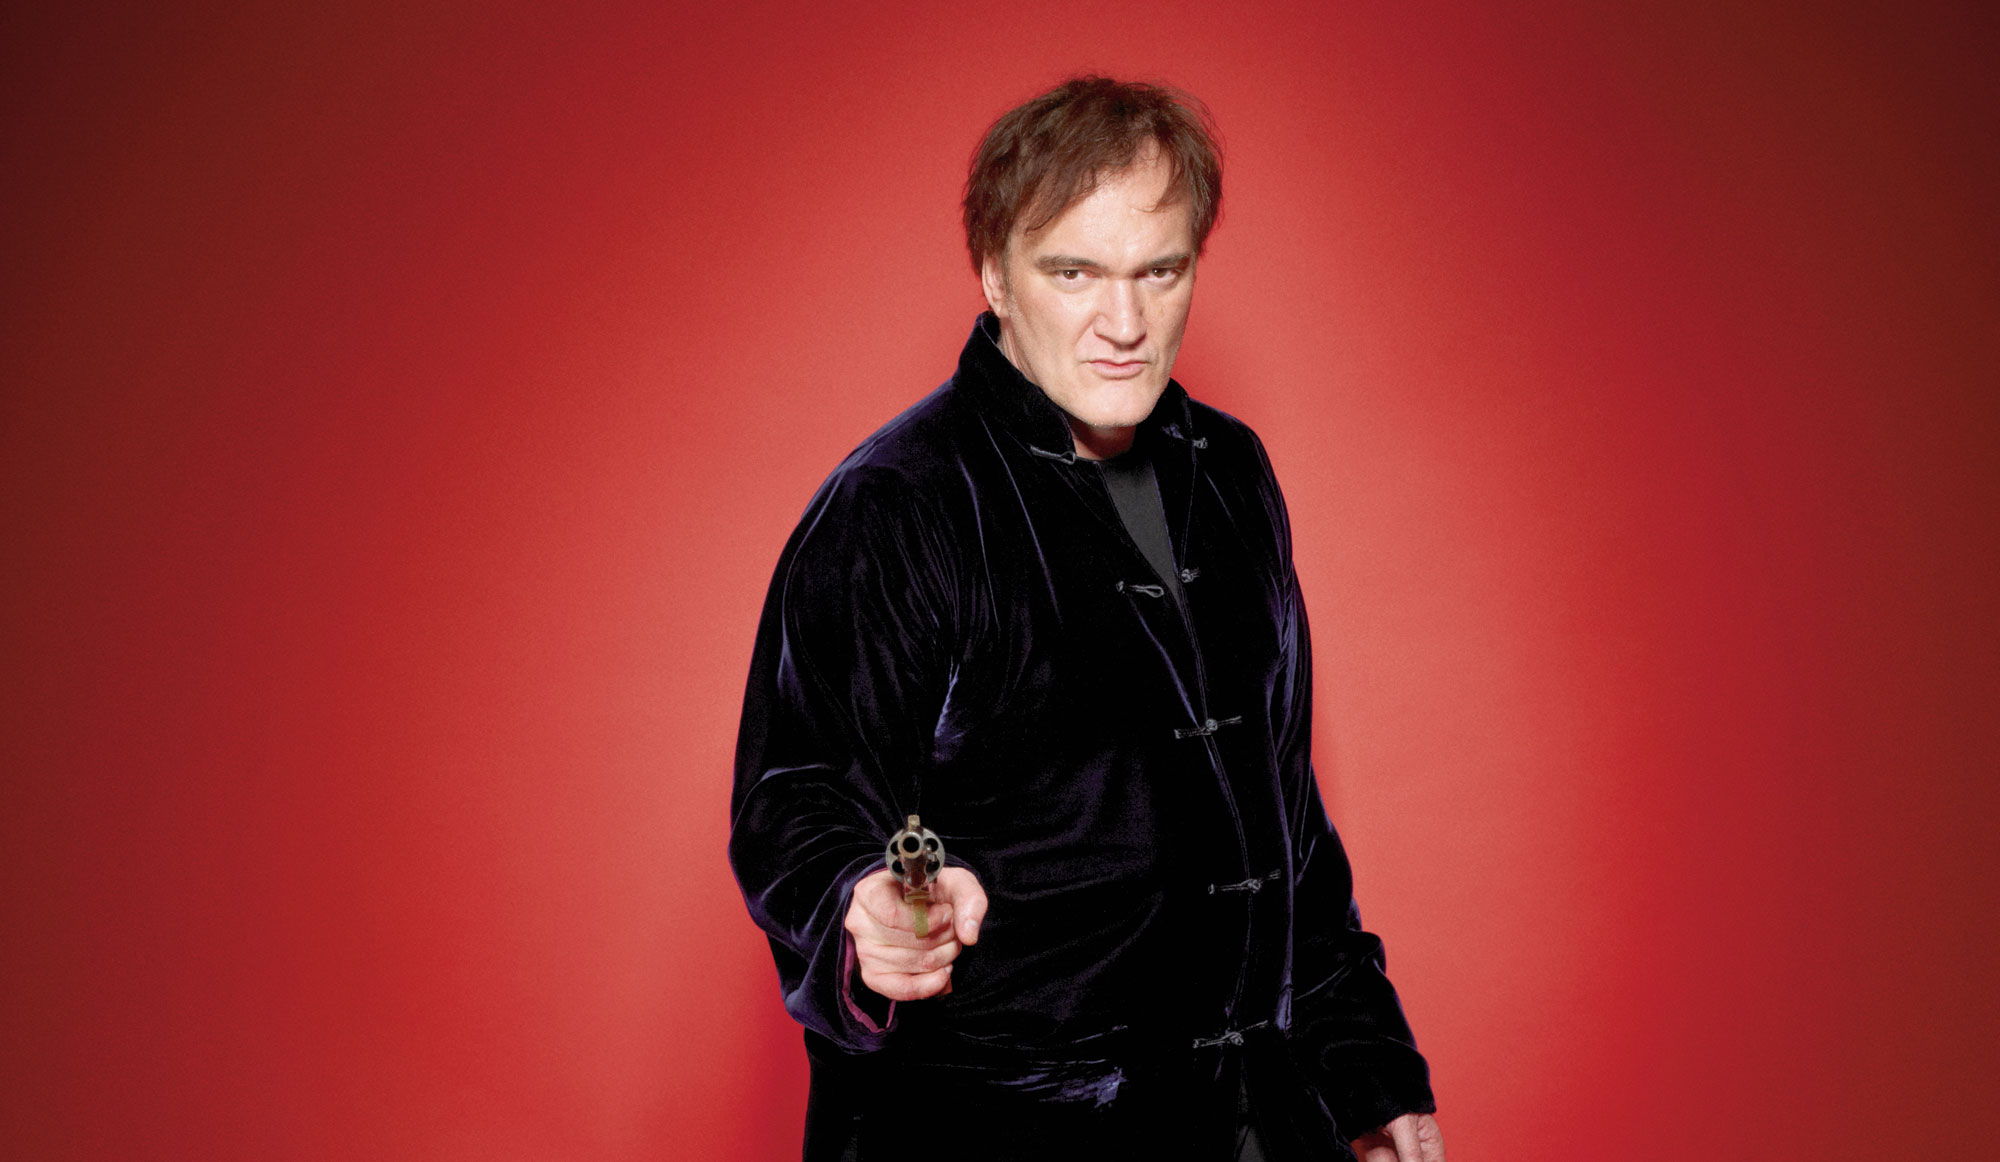 Quentin Tarantino Wallpapers High Resolution And Quality